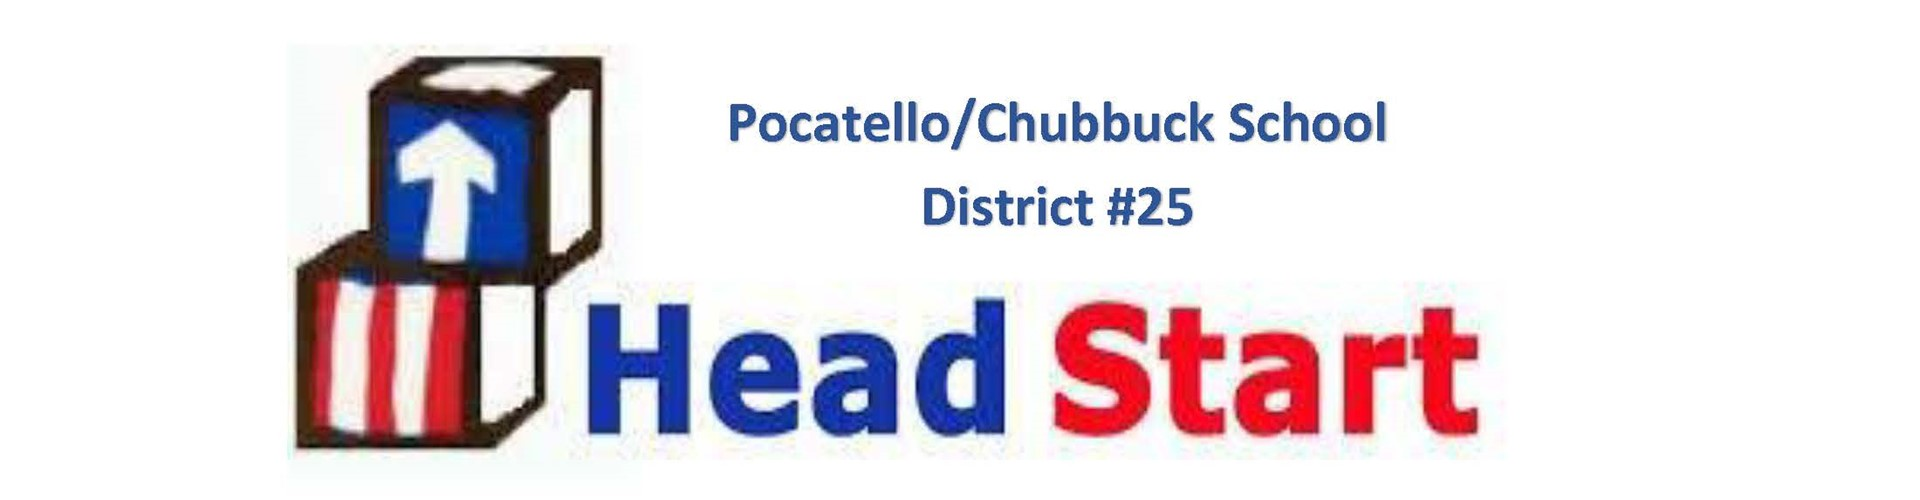 Pocatello/Chubbuck School District #25 Head Start